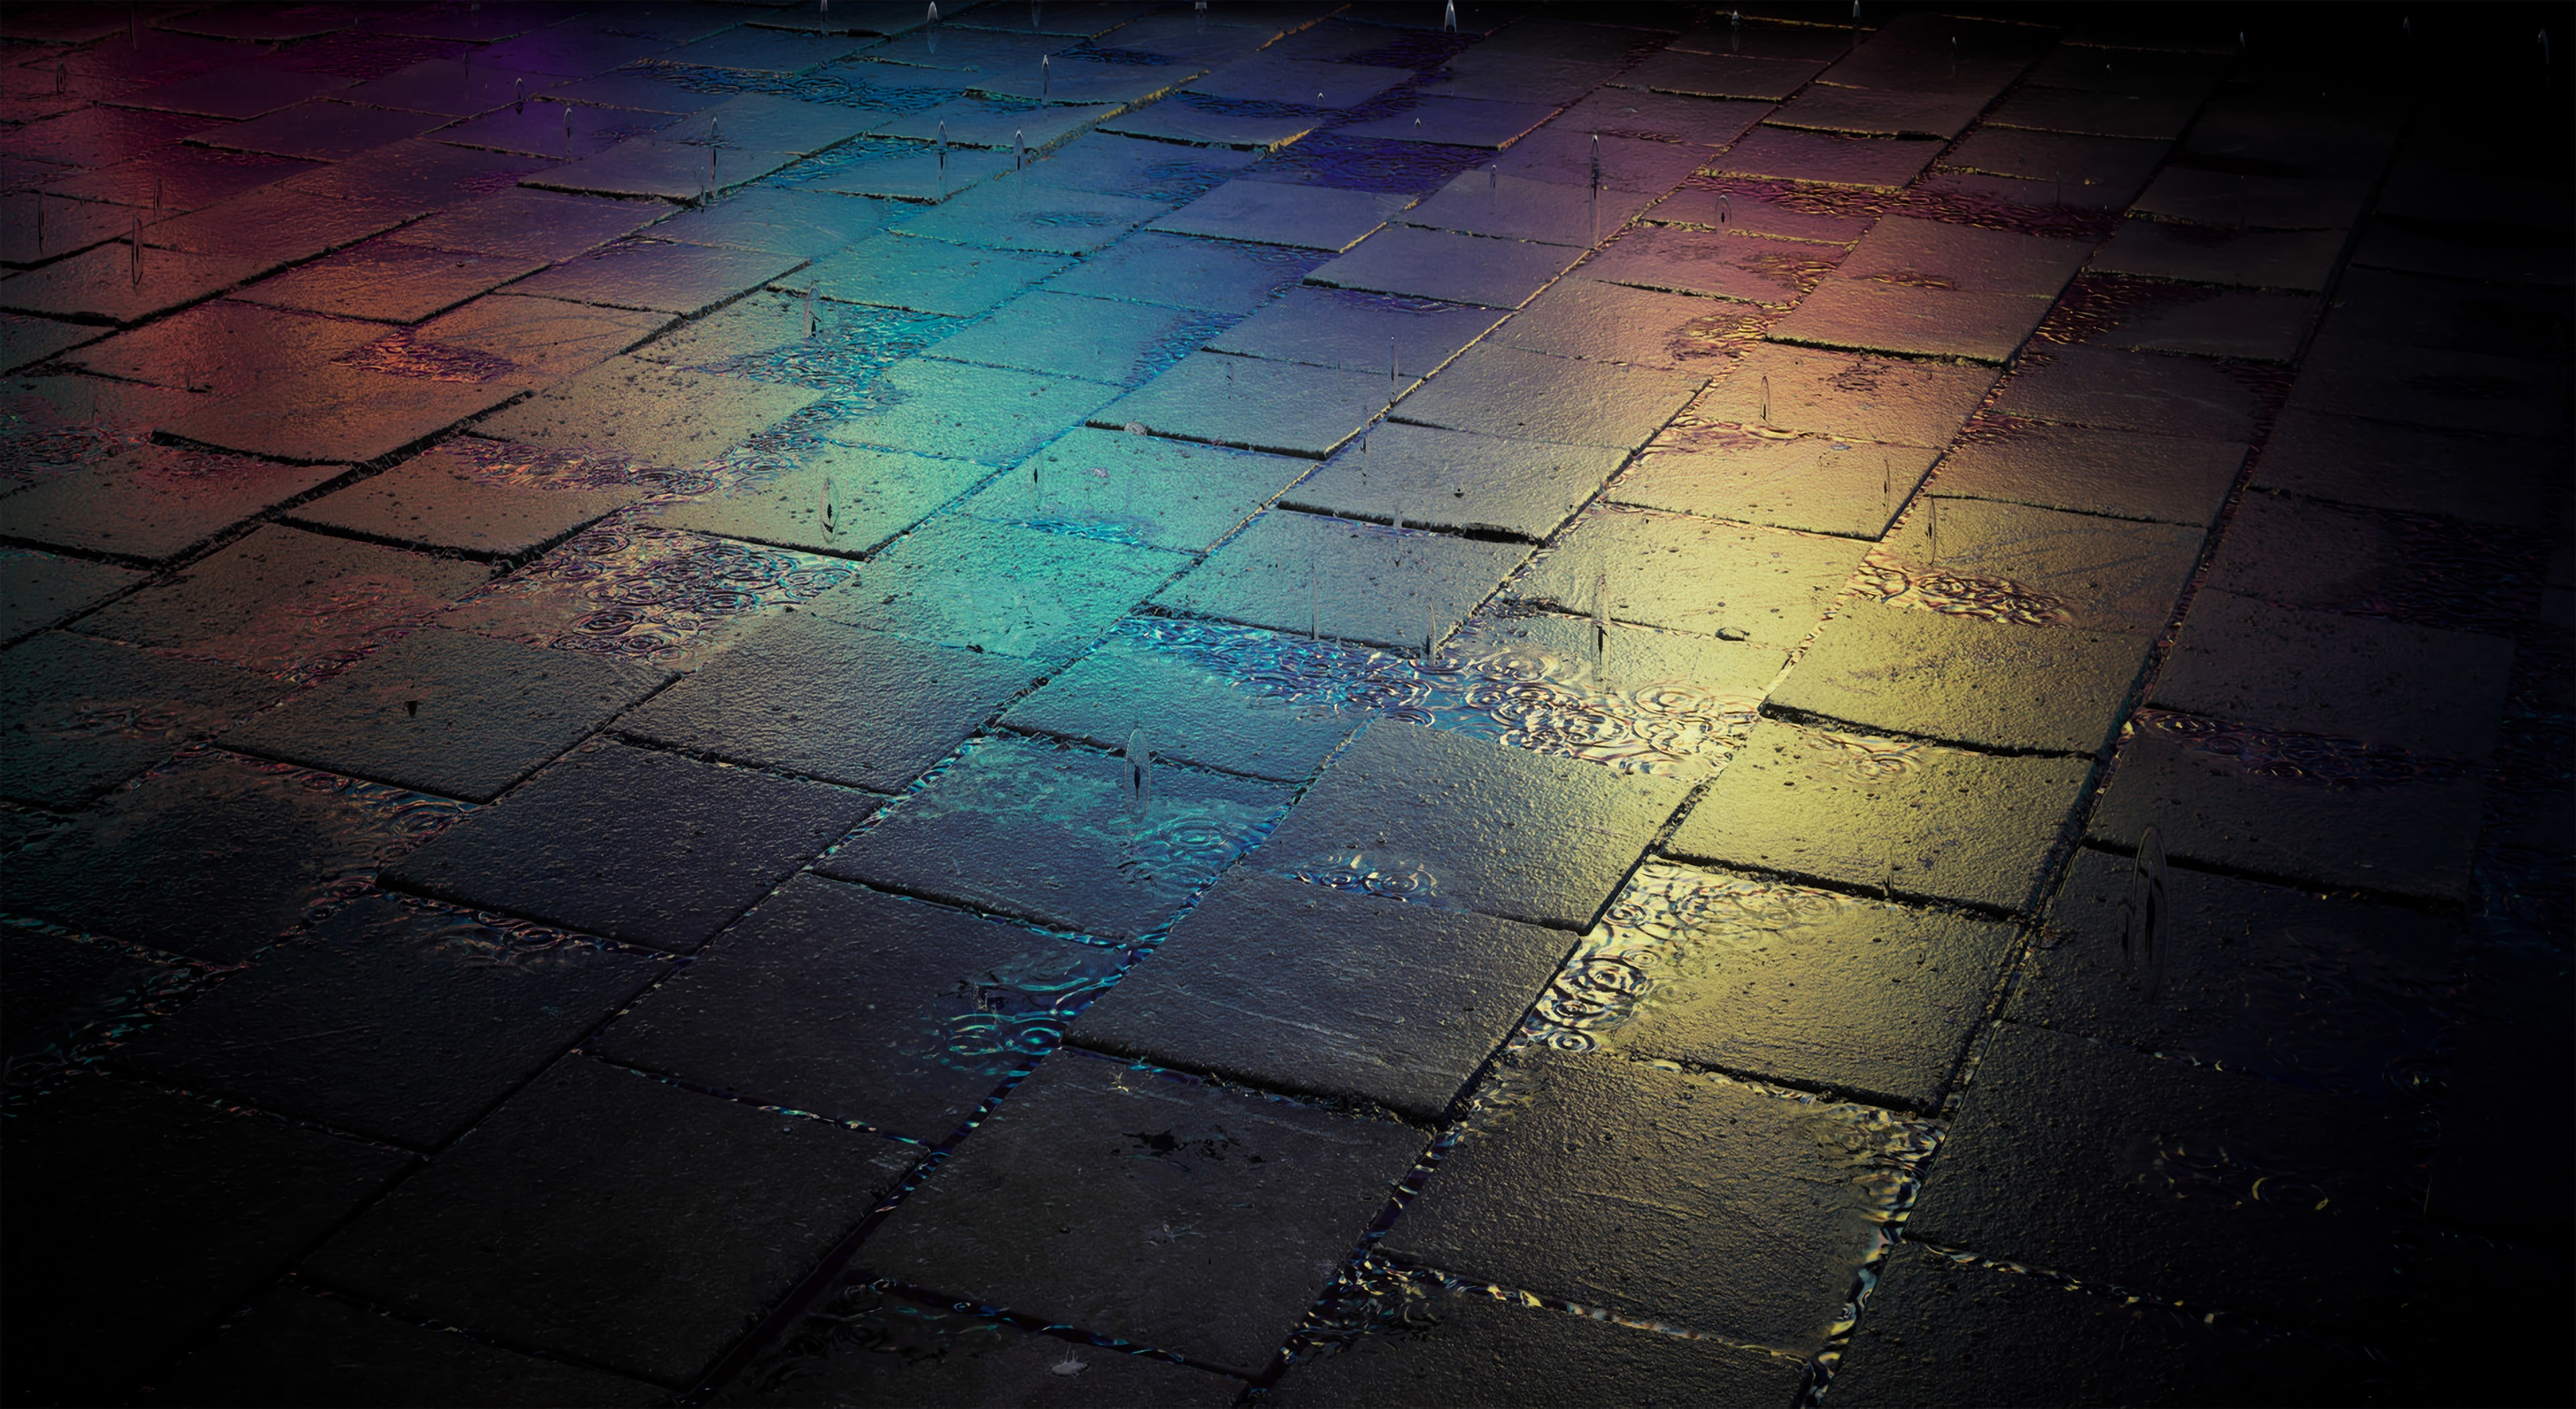 140595 download wallpaper Dark, Tile, Street, Wet, Gradient, Multicolored, Motley screensavers and pictures for free